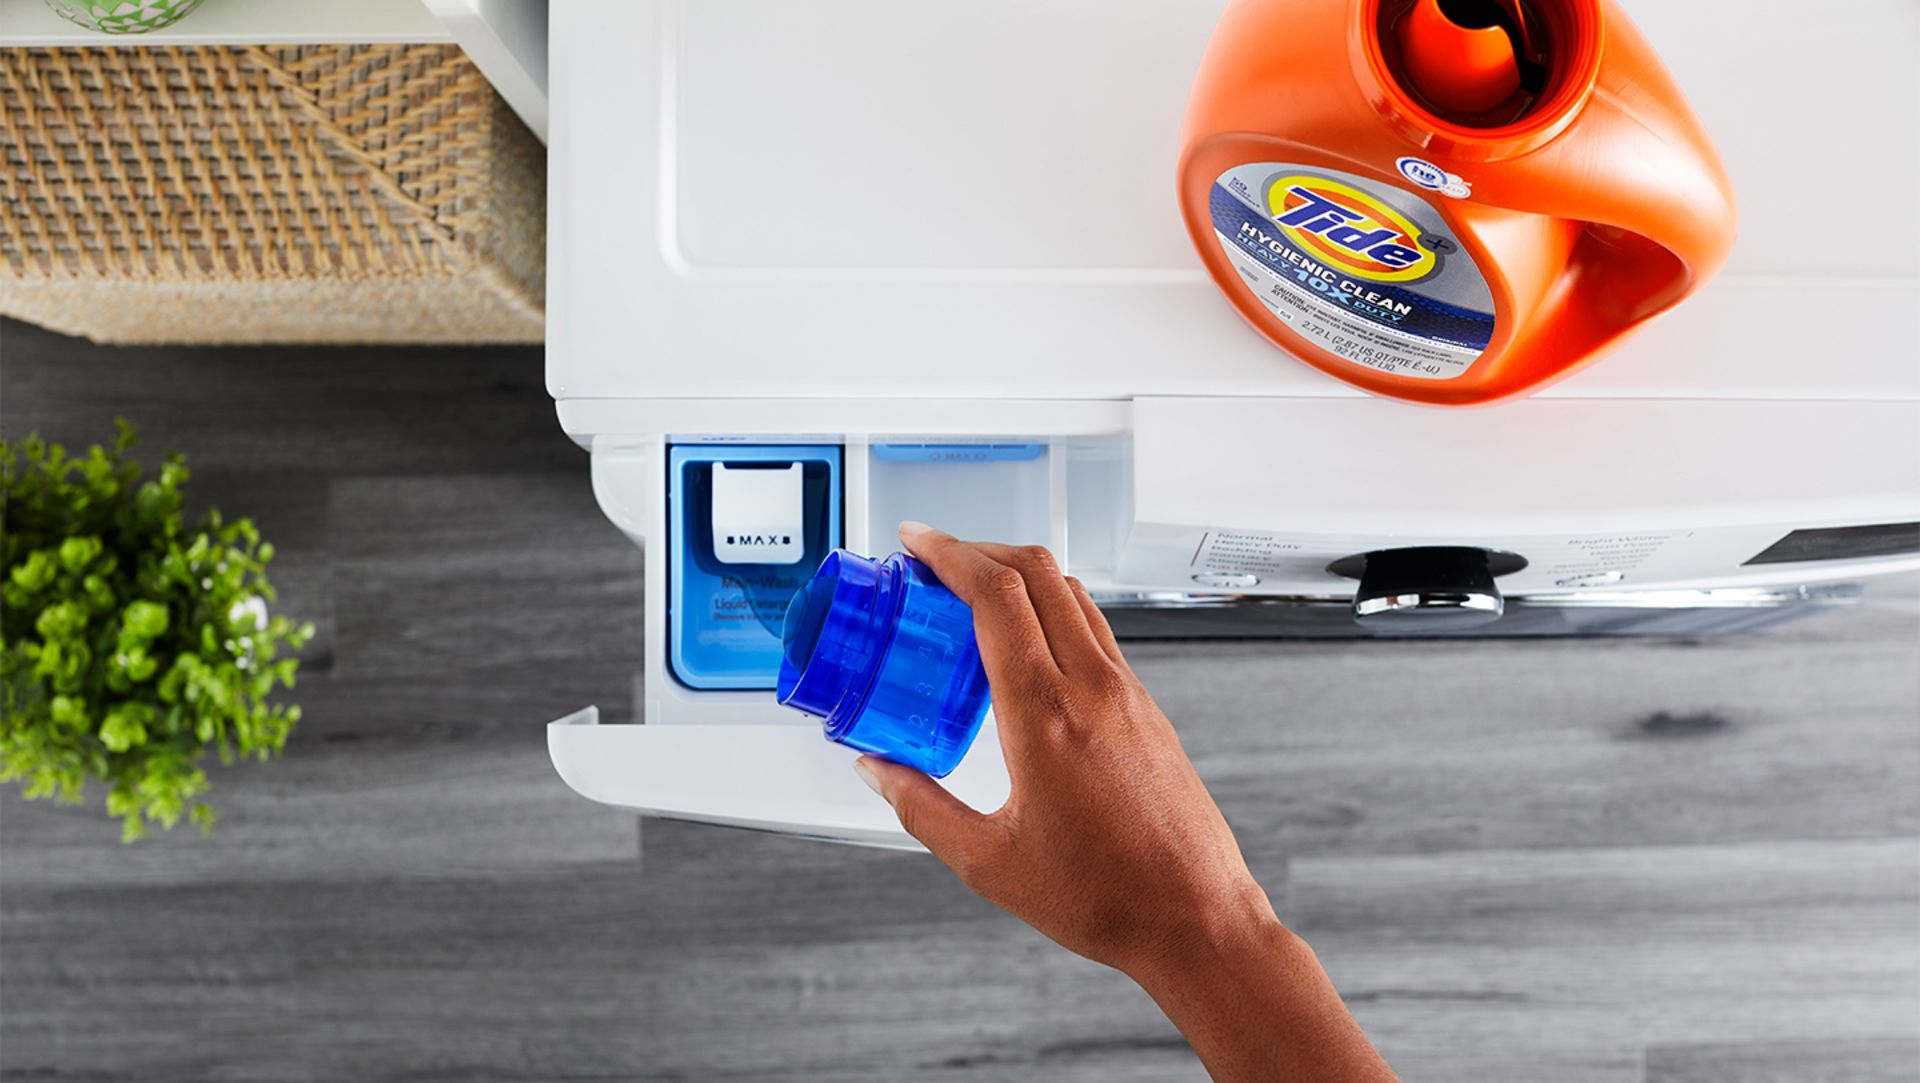 A person pouring Tide liquid detergent into the detergent dispenser